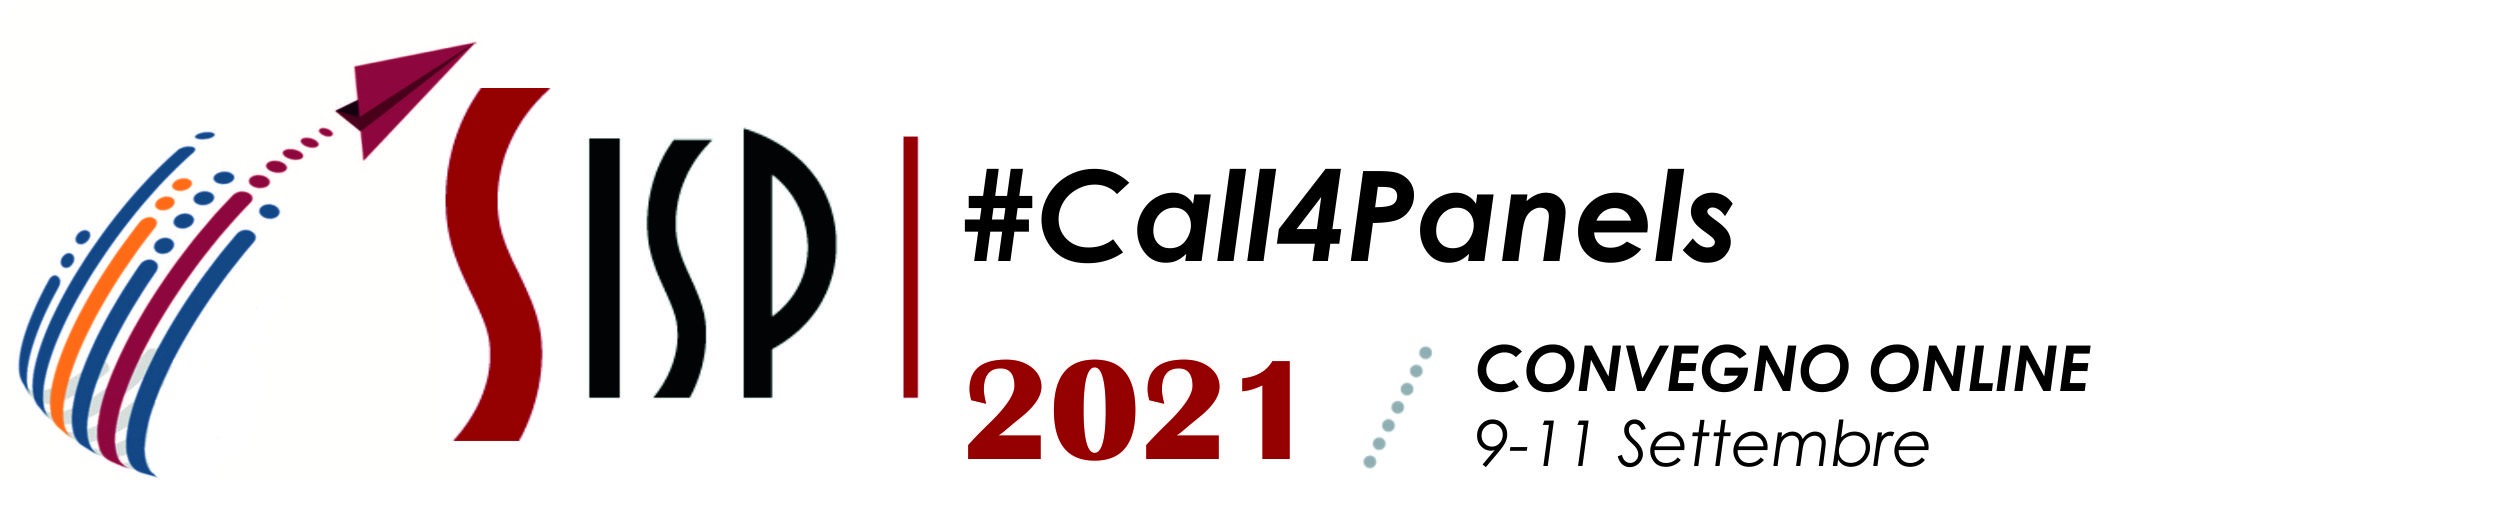 Convegno SISP 2021: CALL FOR PANEL NOW OPEN!